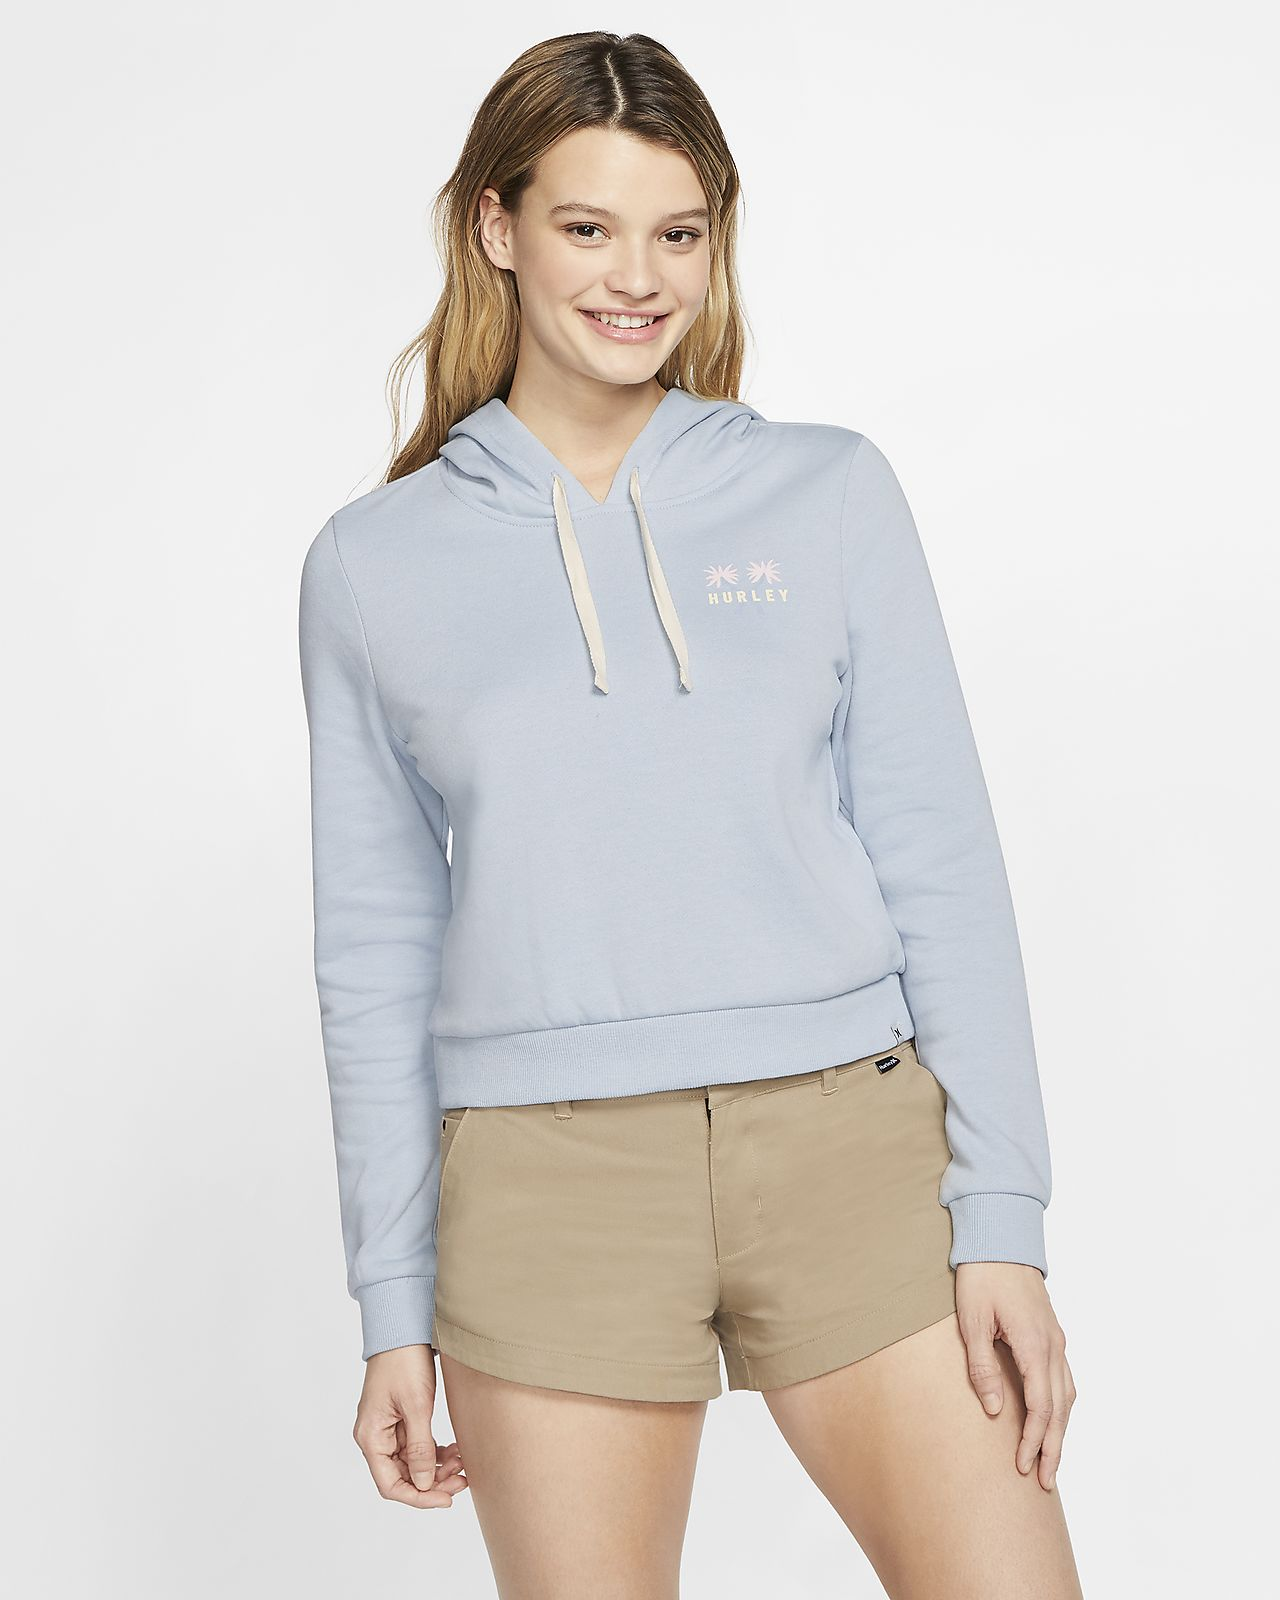 Hurley Mingo Perfect Women's Cropped Fleece Pullover